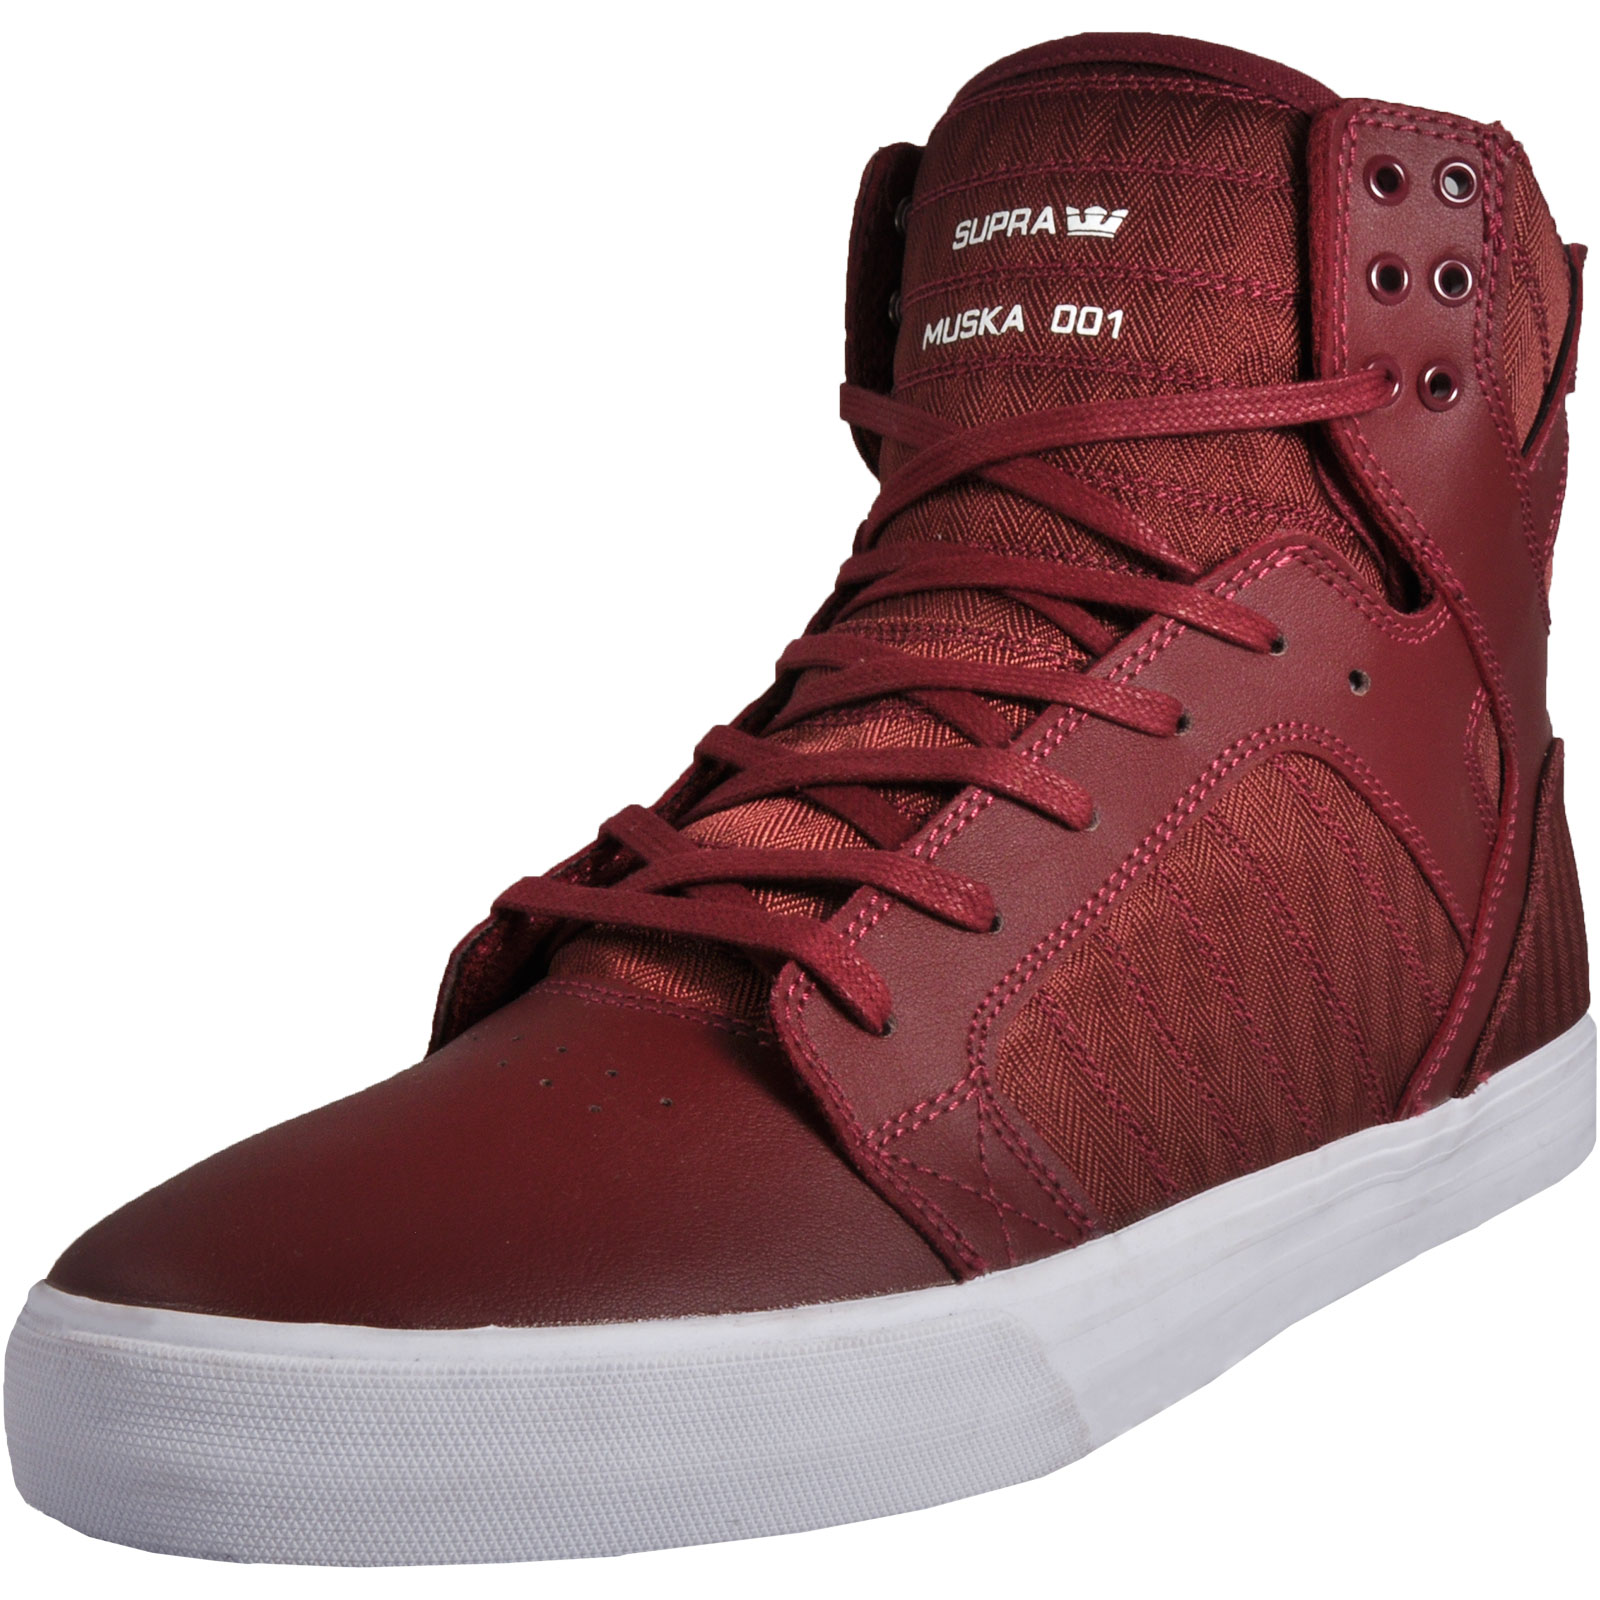 596cf8d6111f Supra X Chad Muska Skytop 001 Mens Casual High-Top Trainers Burgundy UK 12  Only